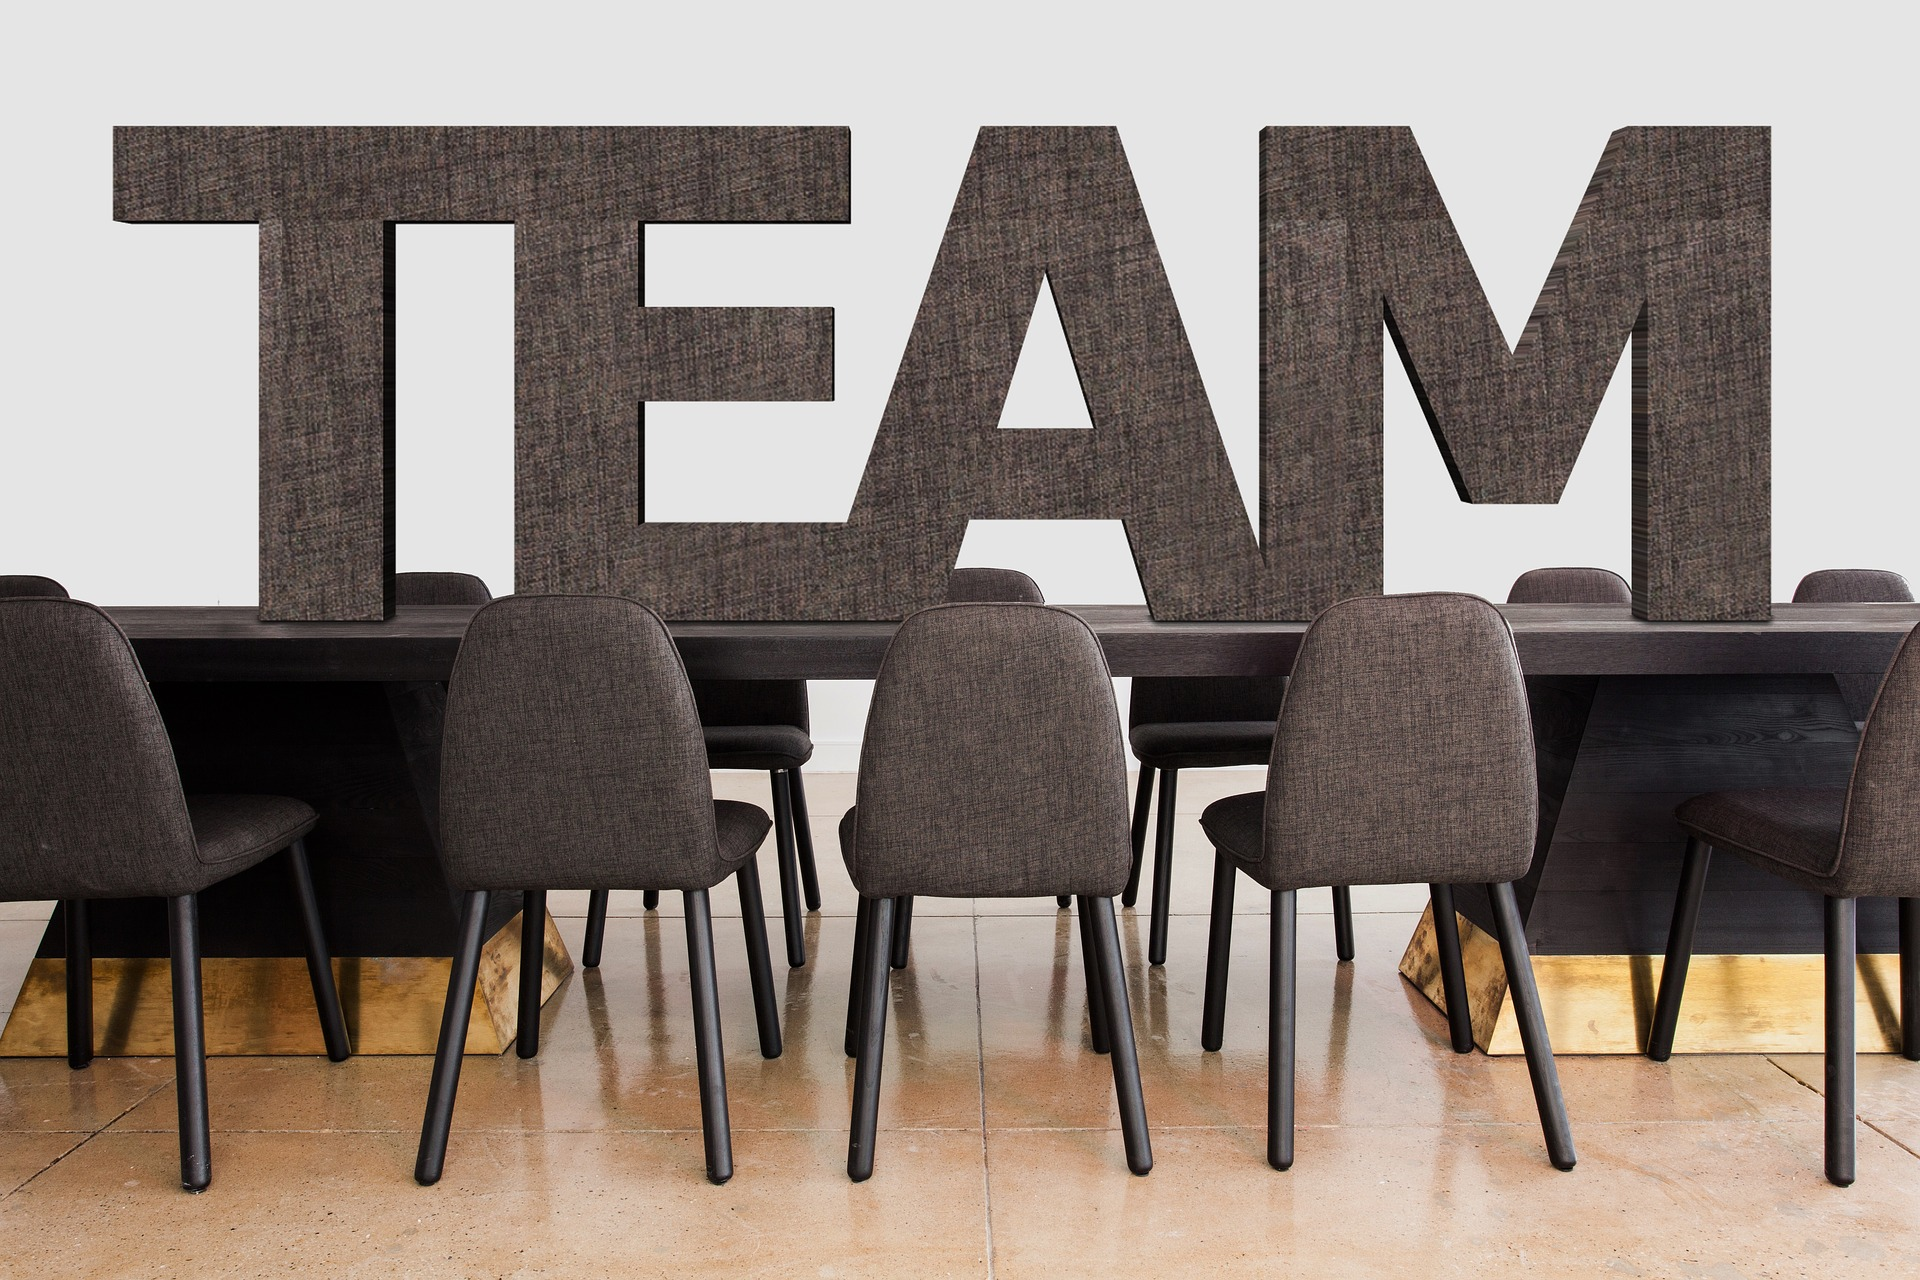 """The word """"Team"""" placed above a conference table"""